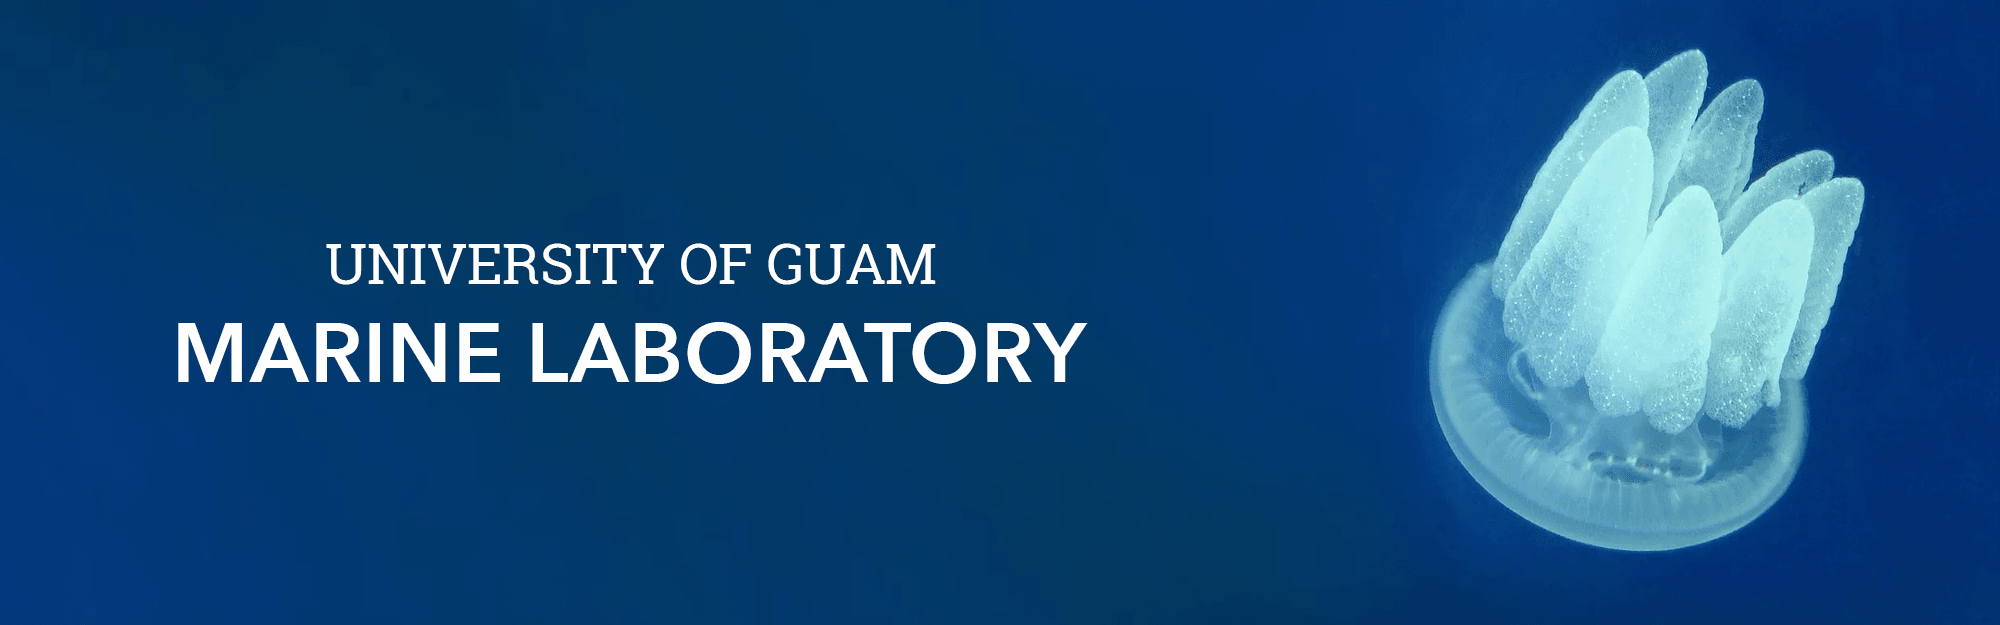 University of Guam Marine Laboratory